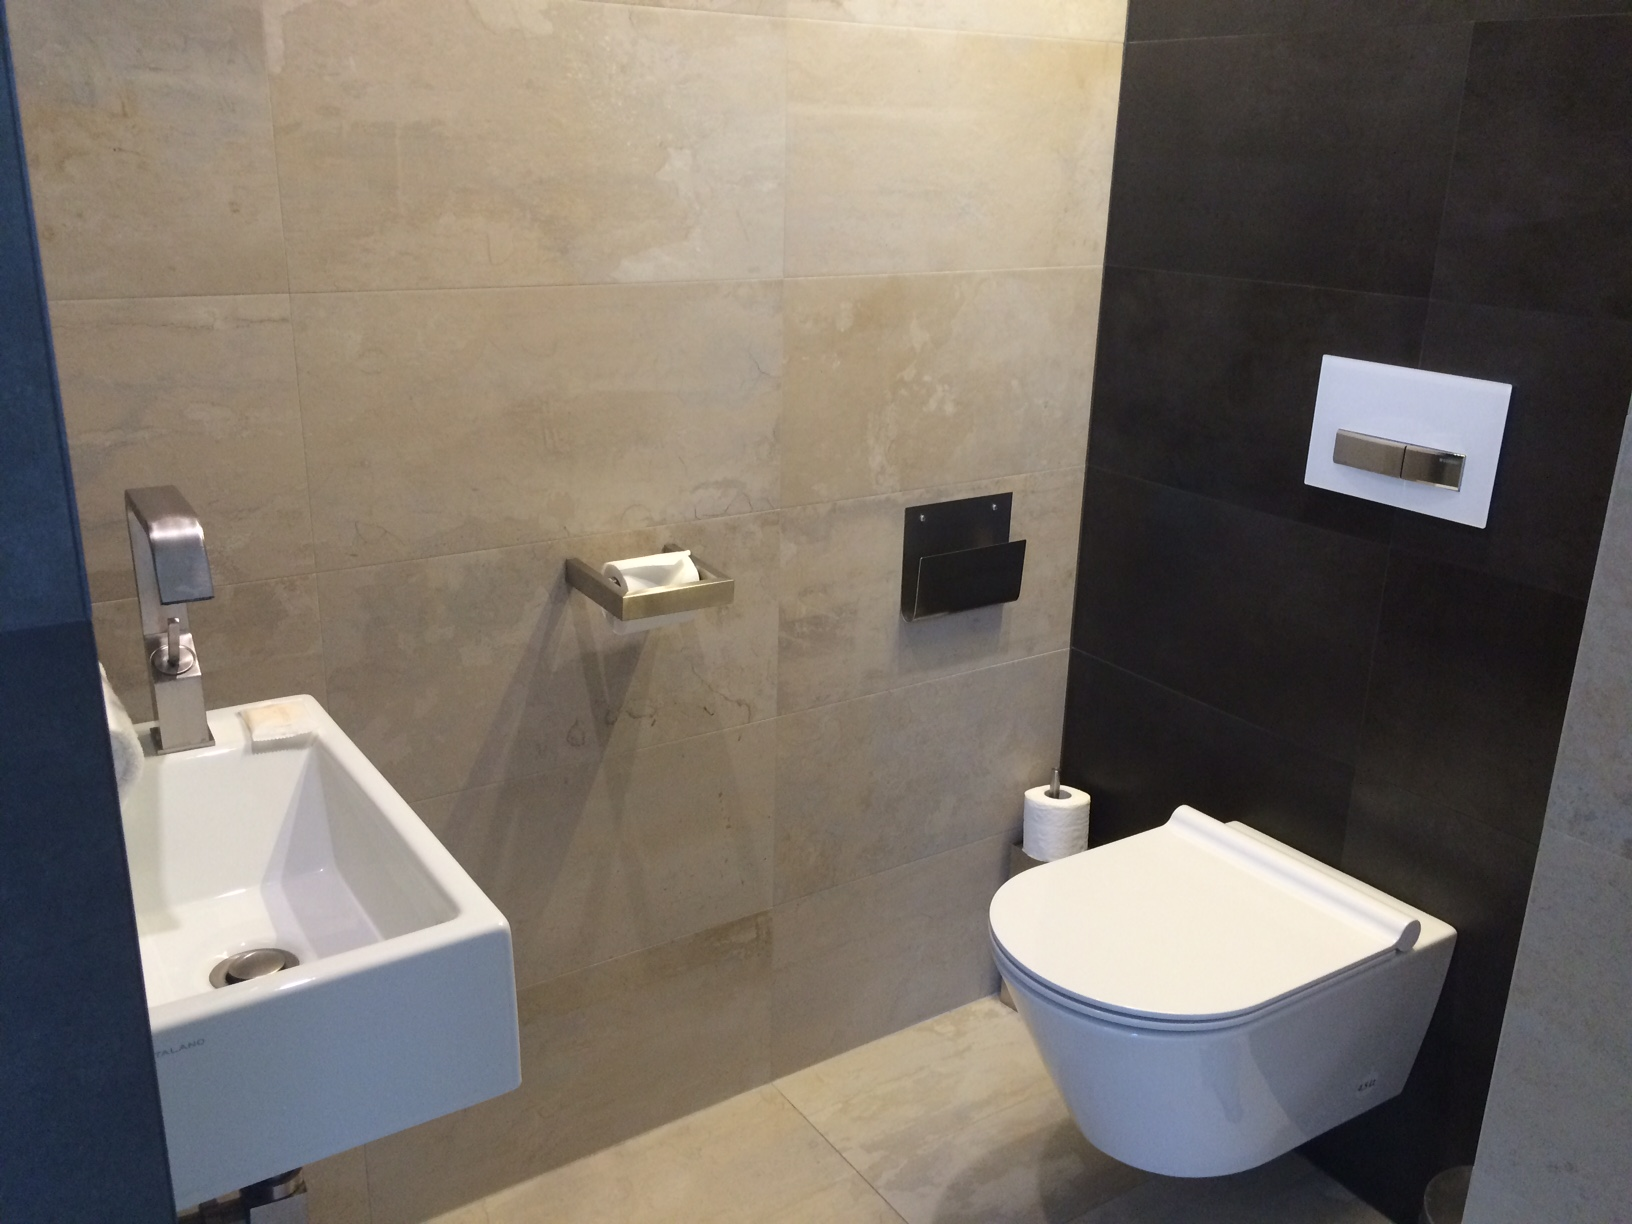 The toilet room (separate from shower).